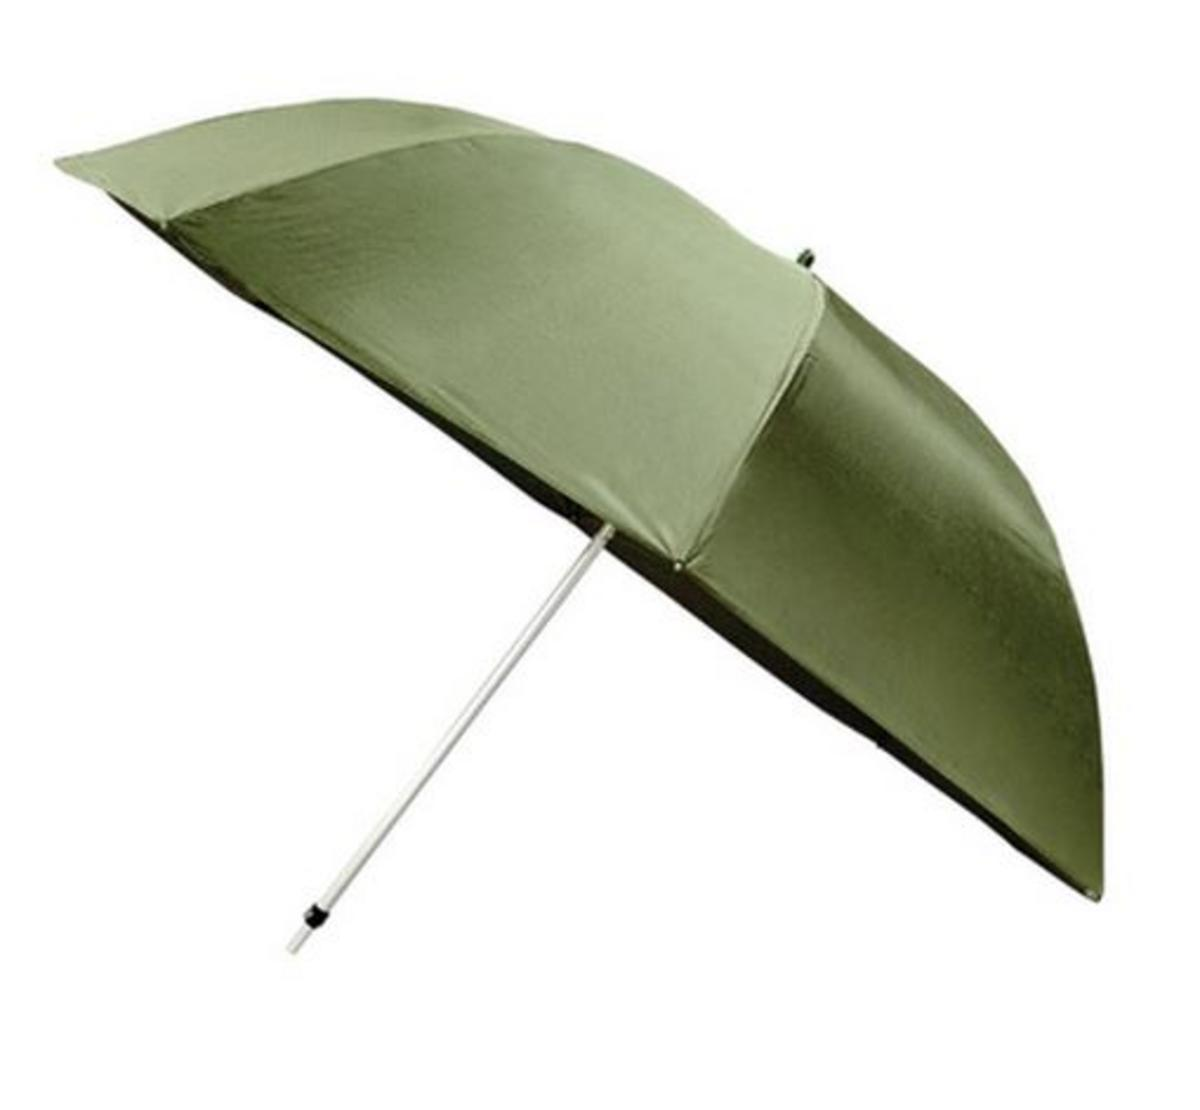 DAIWA MISSION BROLLY 125CMS Model No MB125 UMBRELLA BROLLY SHELTER